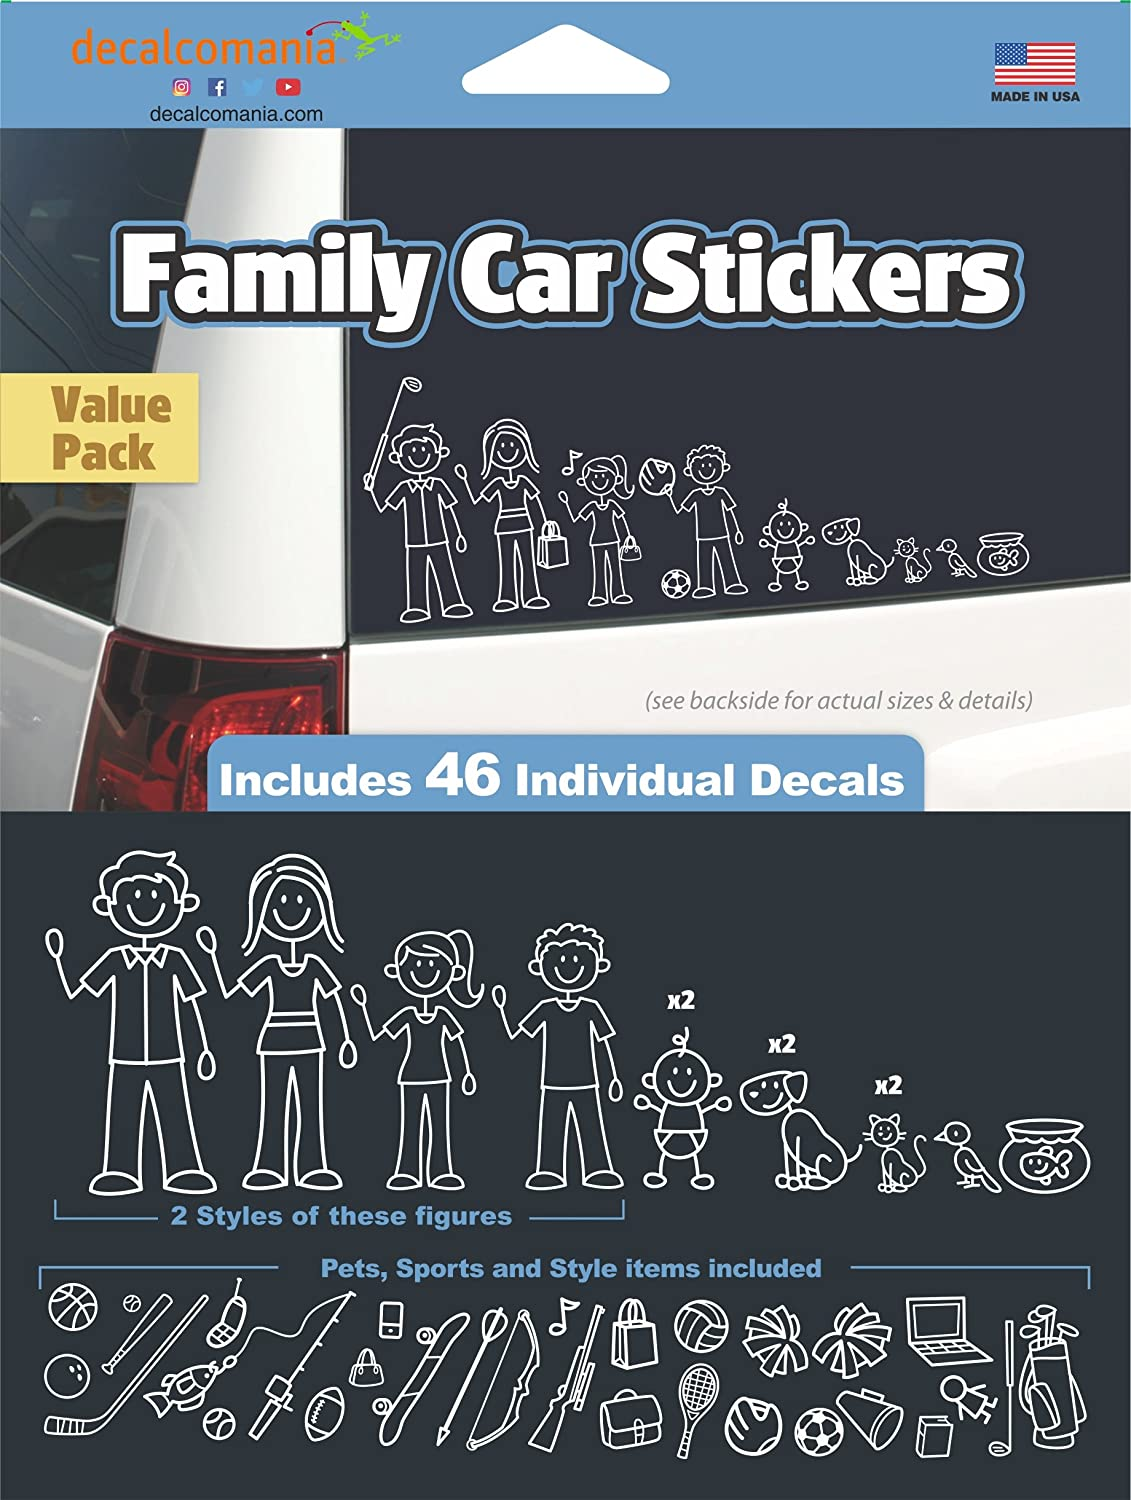 Cool Family Car Stickers - Value Pack - contains 46: Amazon.co.uk:  Electronics